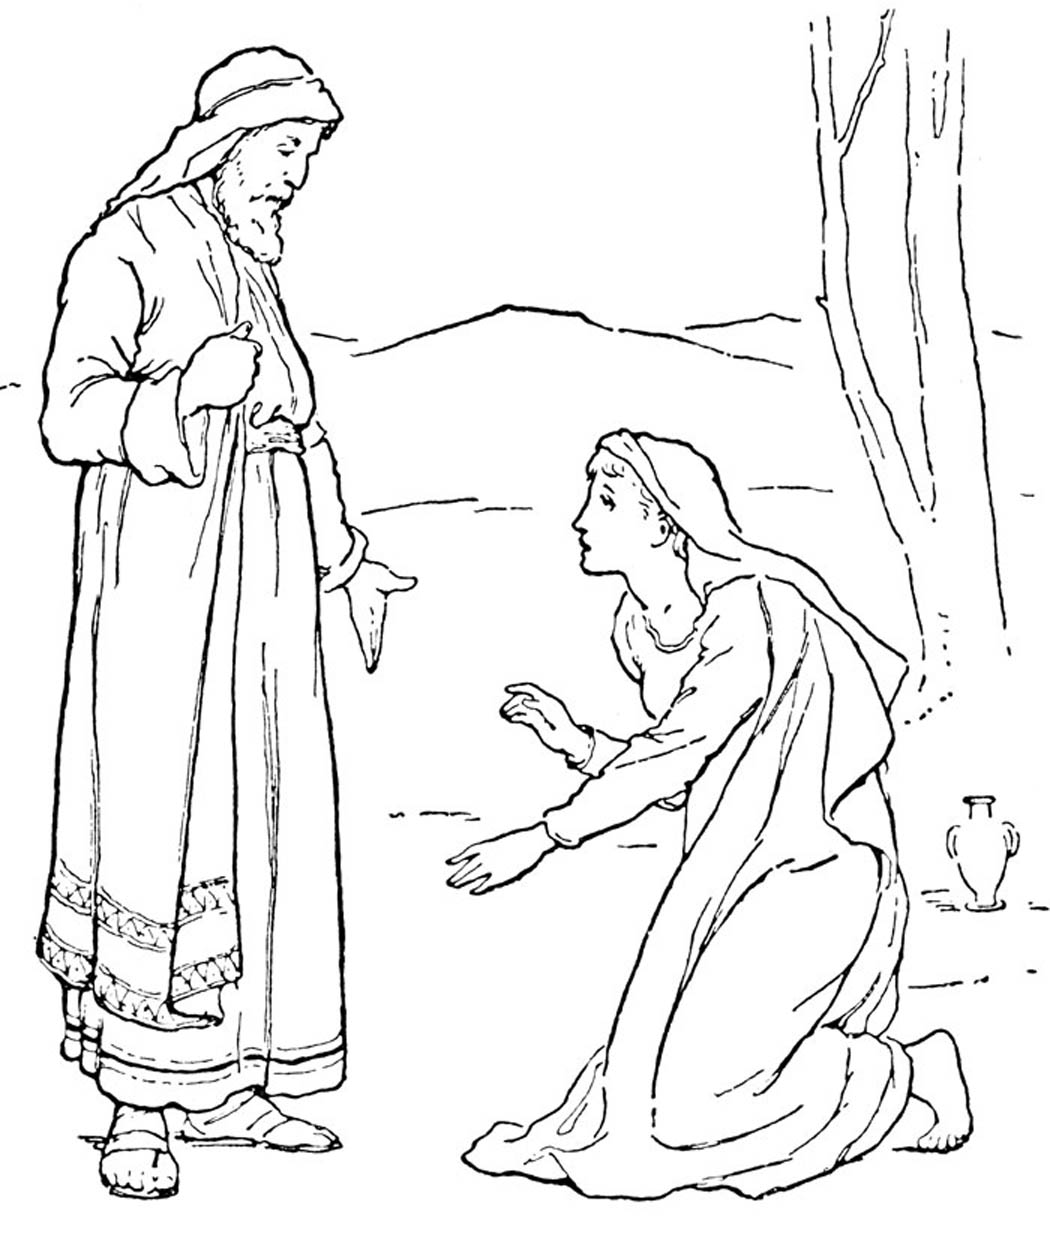 little bible heroes coloring pages little bible heroes coloring pages pages coloring bible little heroes